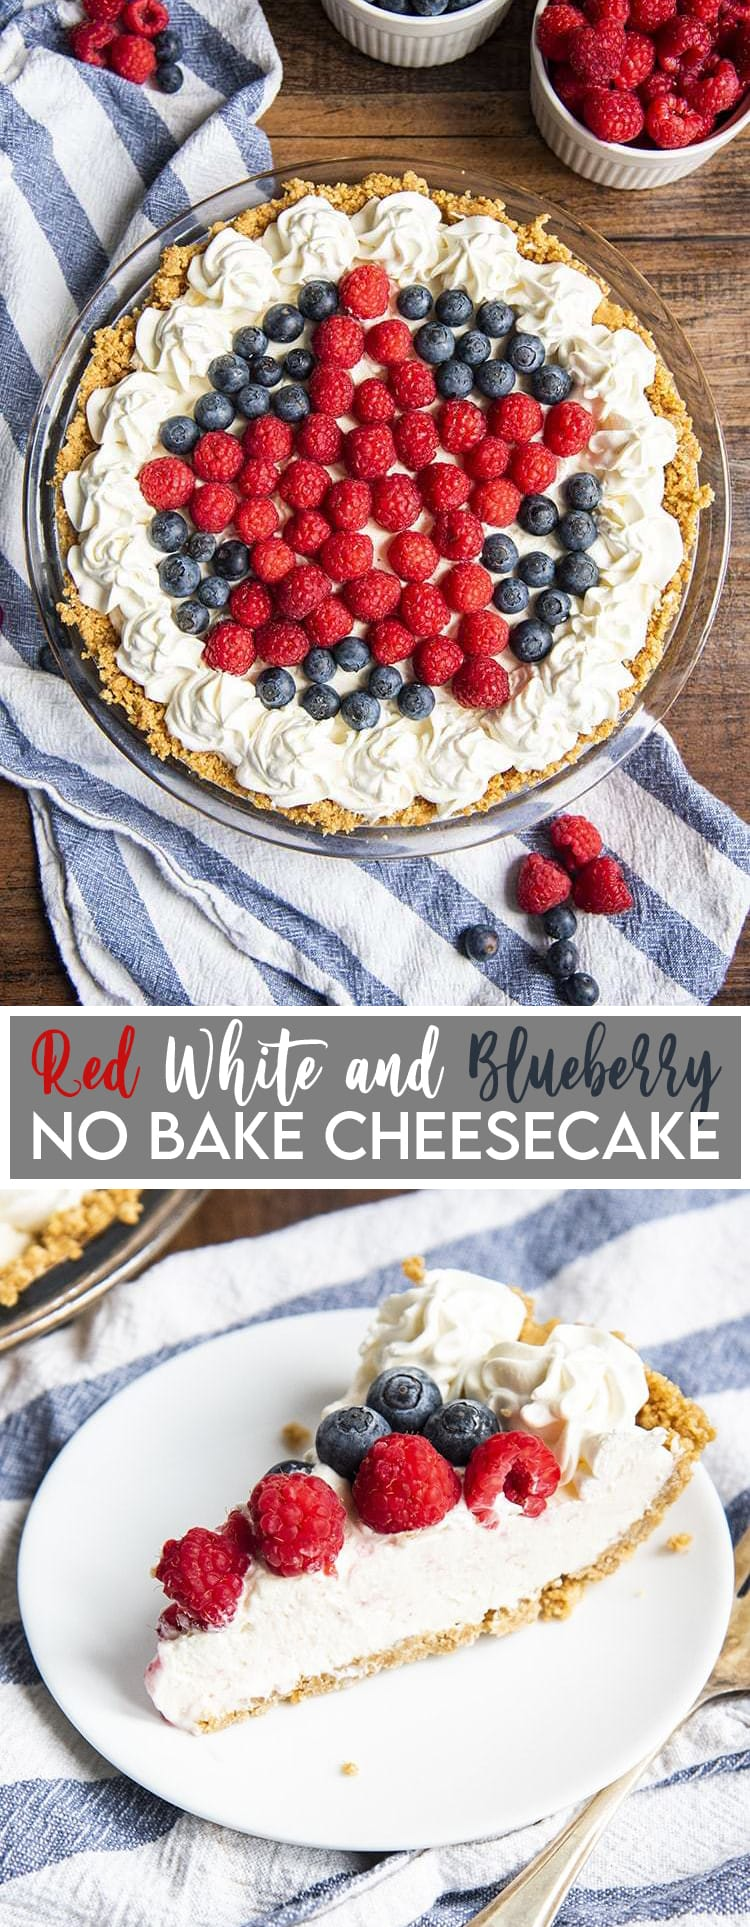 Red White and Blueberry Cheesecake with a raspberry star on top and text overlay for pinterest